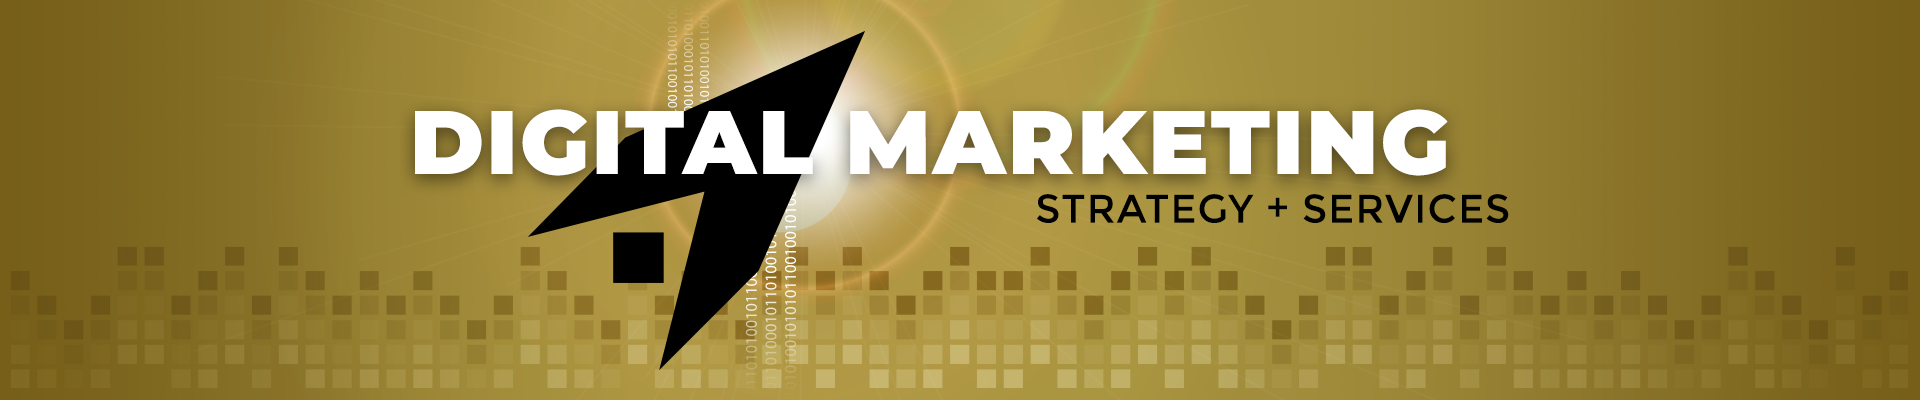 Digital Marketing Strategy + Services